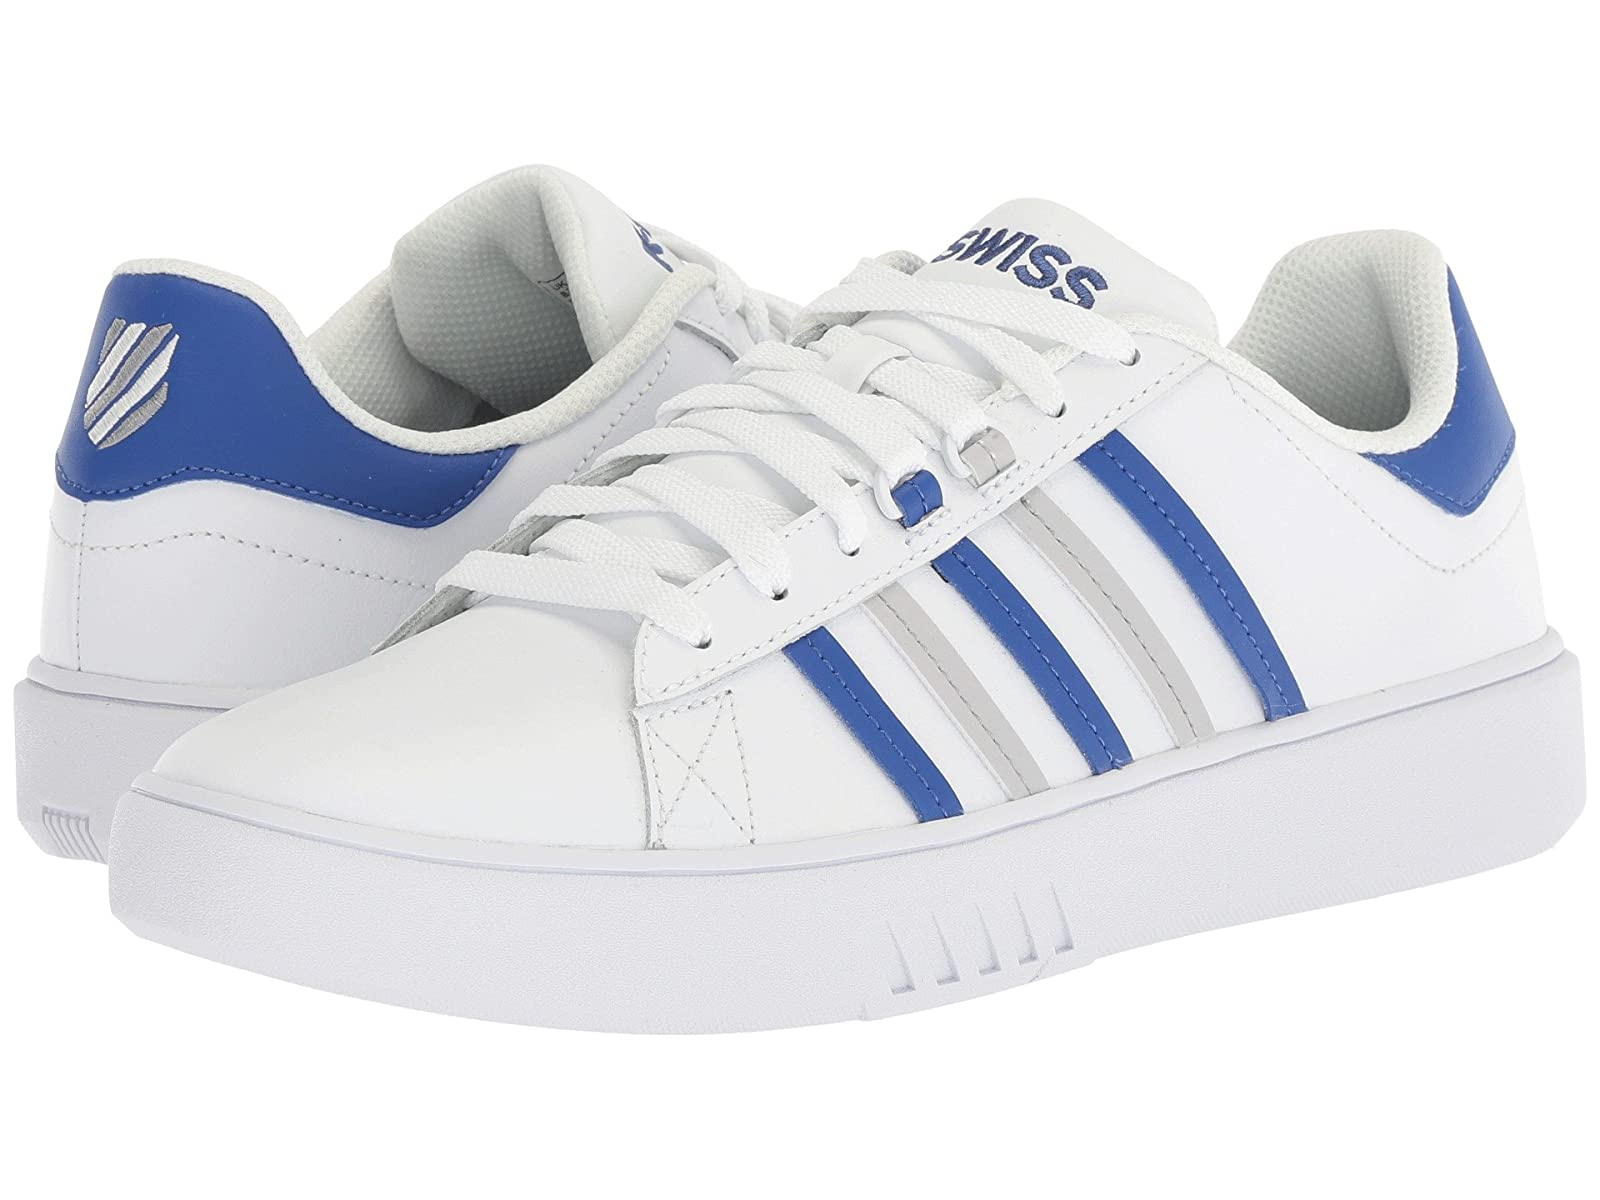 K-Swiss Pershing Court CMFCheap and distinctive eye-catching shoes